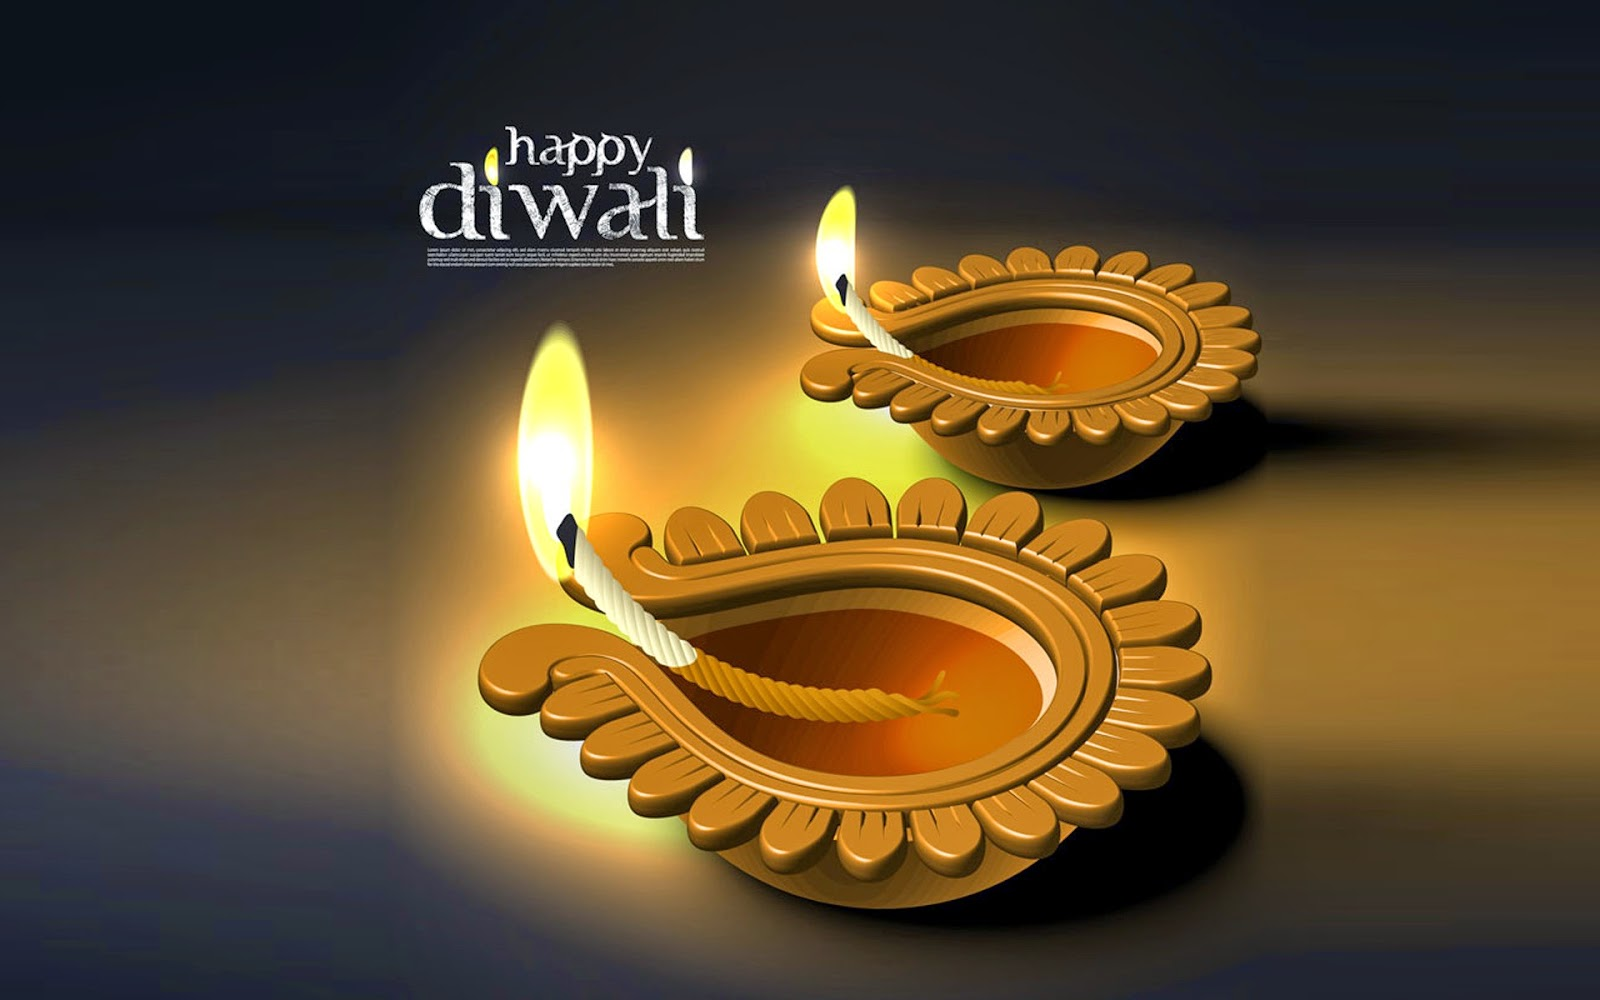 Happy Diwali 2014 Greeting and Wishes HD Wallpapers Free ...